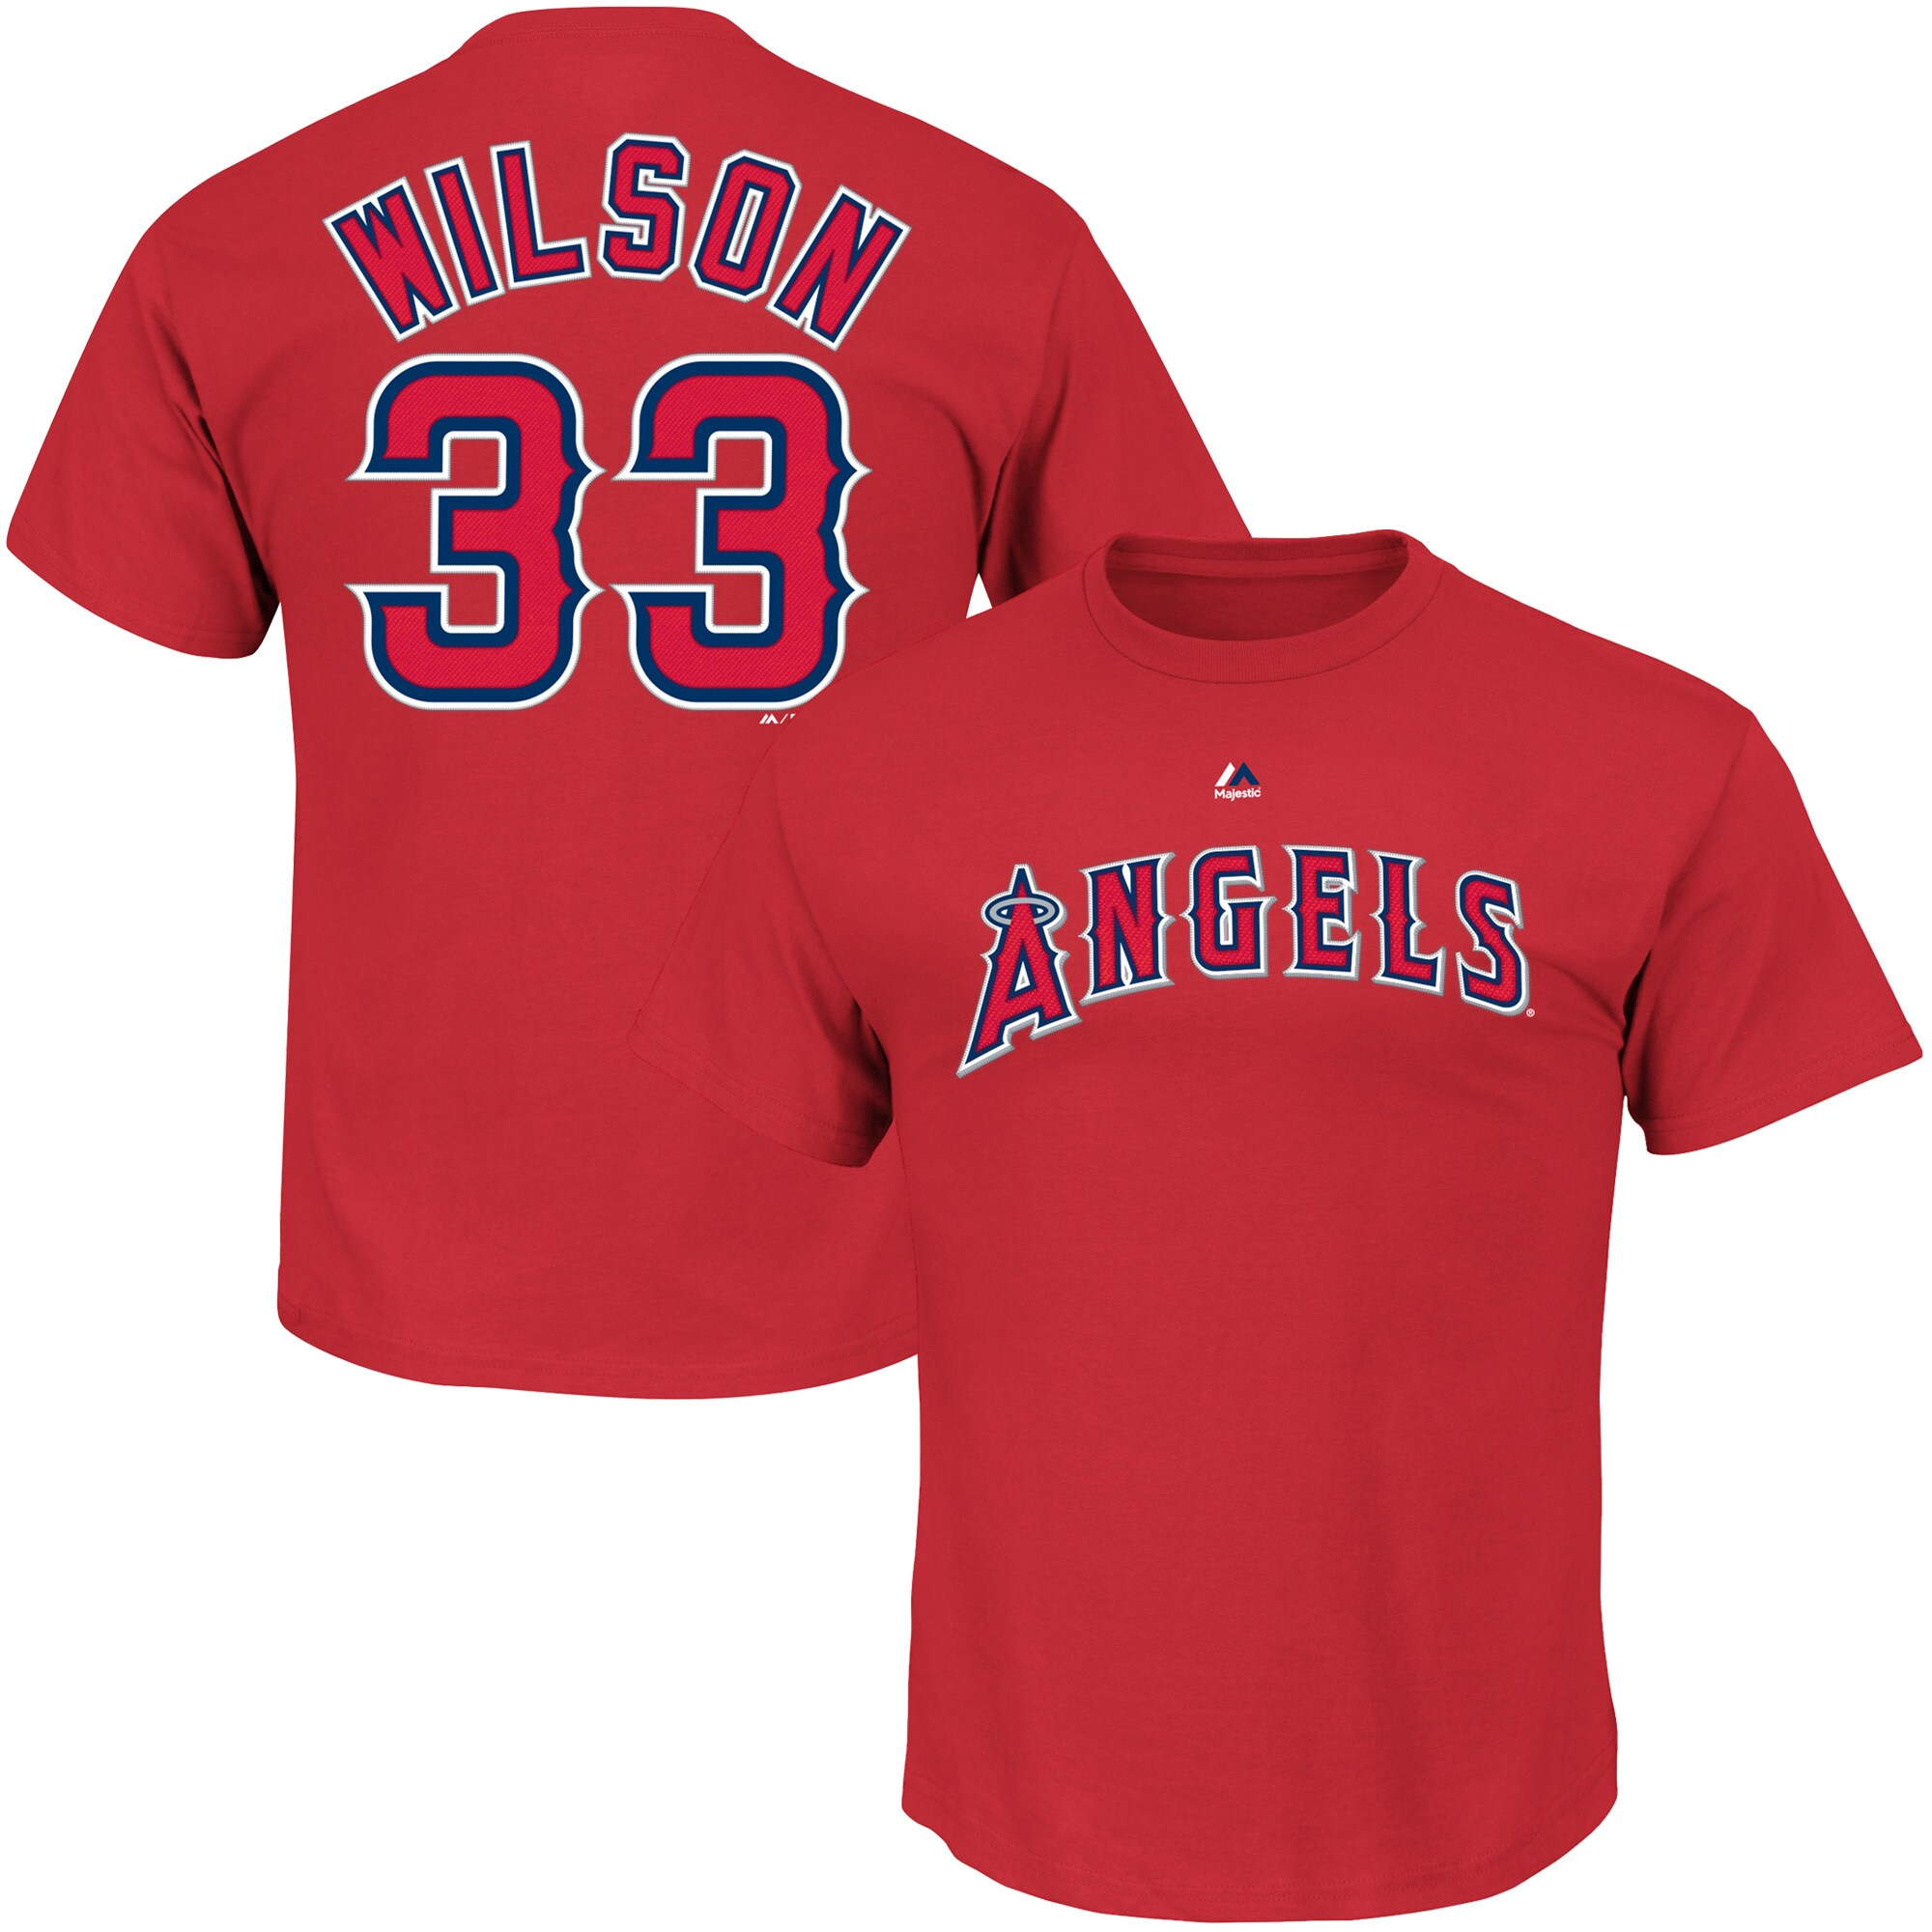 CJ Wilson Los Angeles Angels Majestic Official Name & Number T-Shirt - Scarlet